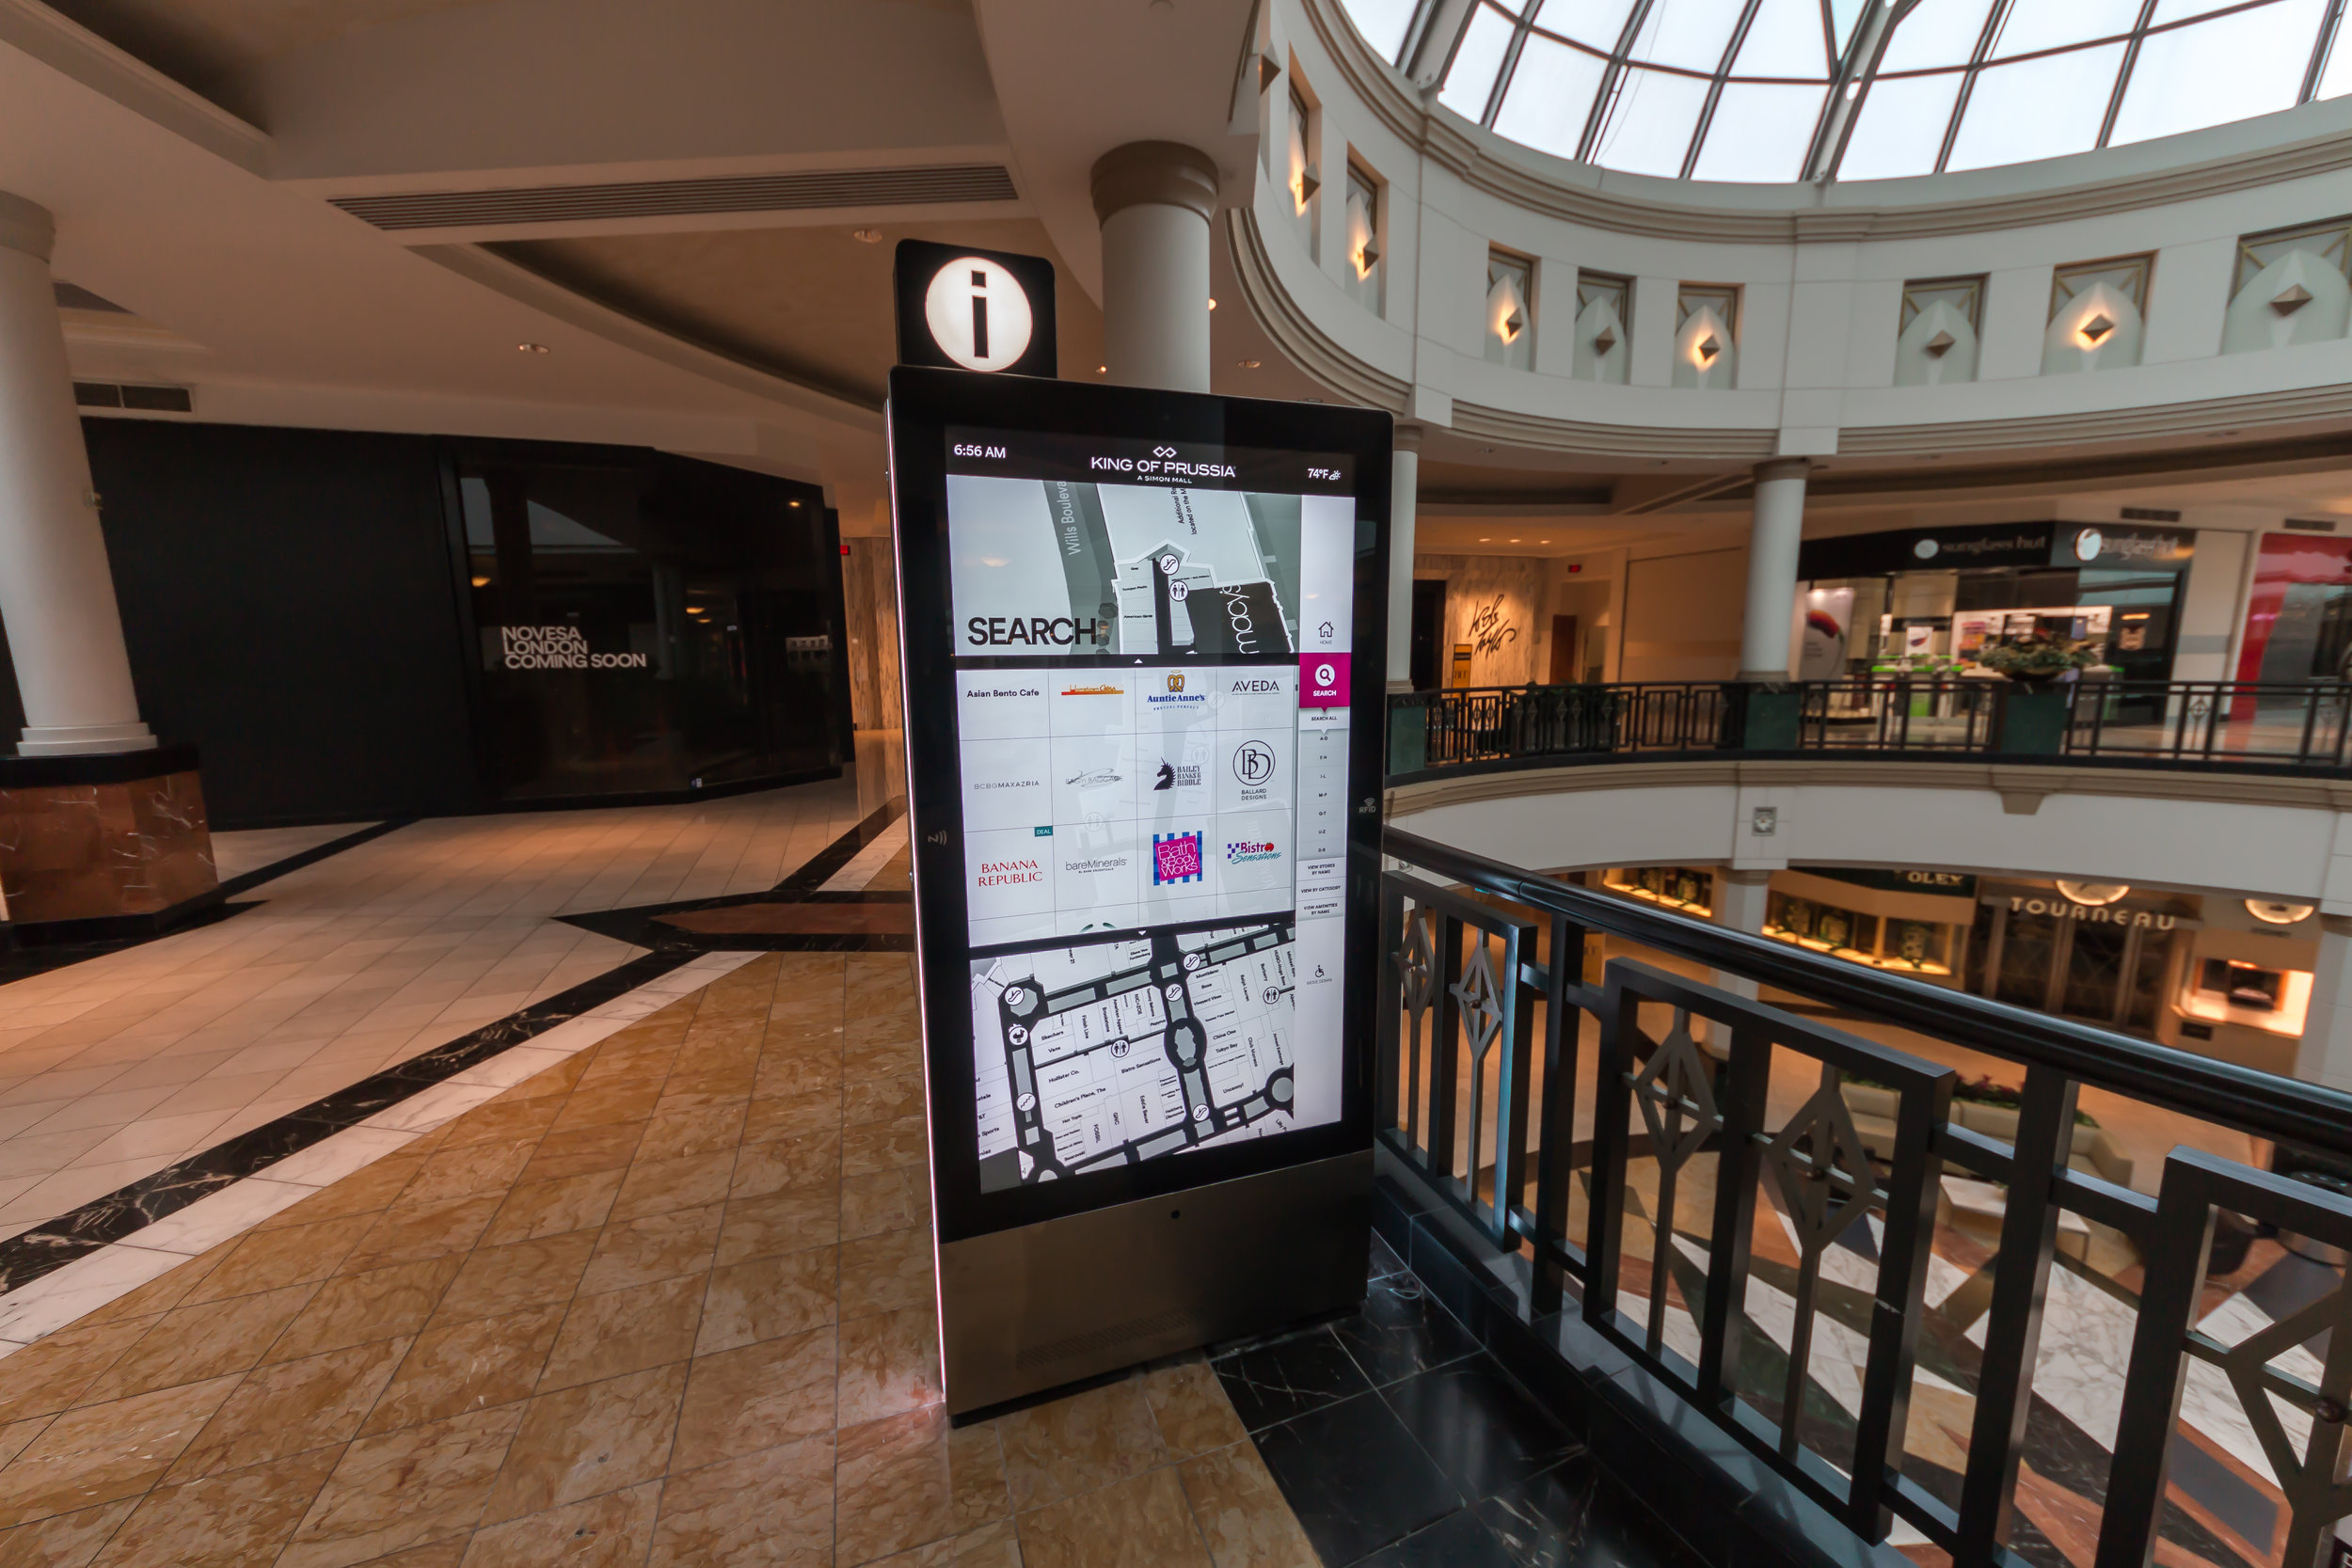 A universal search allows for a quick search of stores, dining options and services.